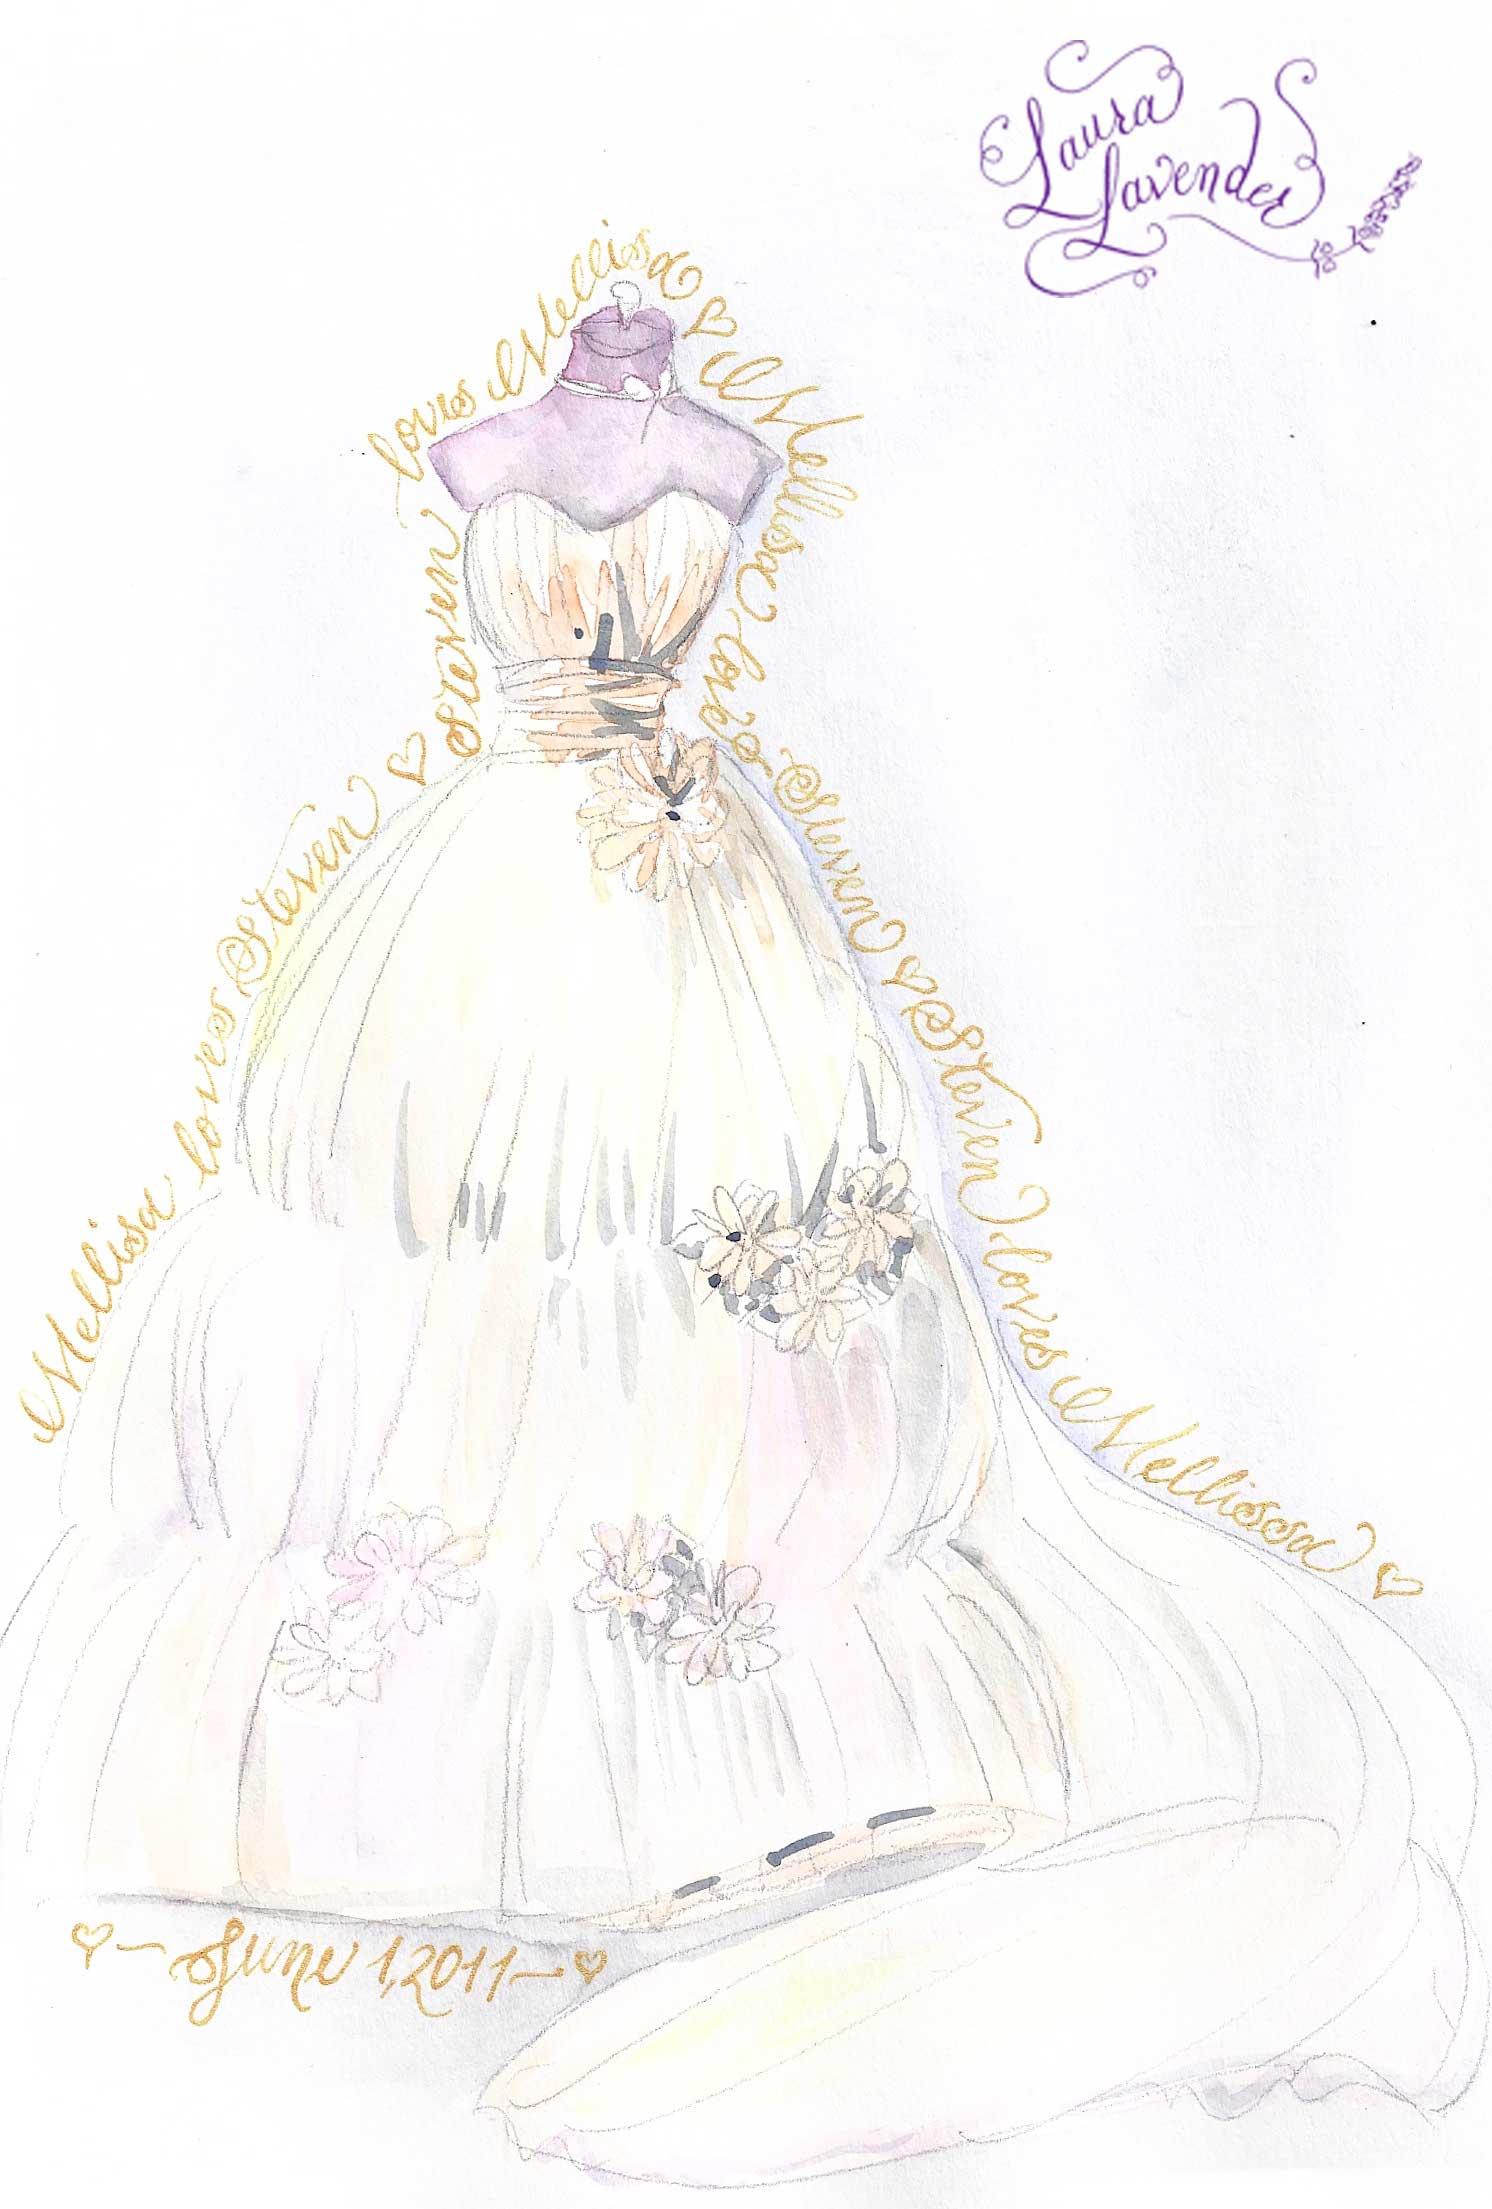 portrait wedding gown dress weddings drawing painting illustration memorabilia watercolor